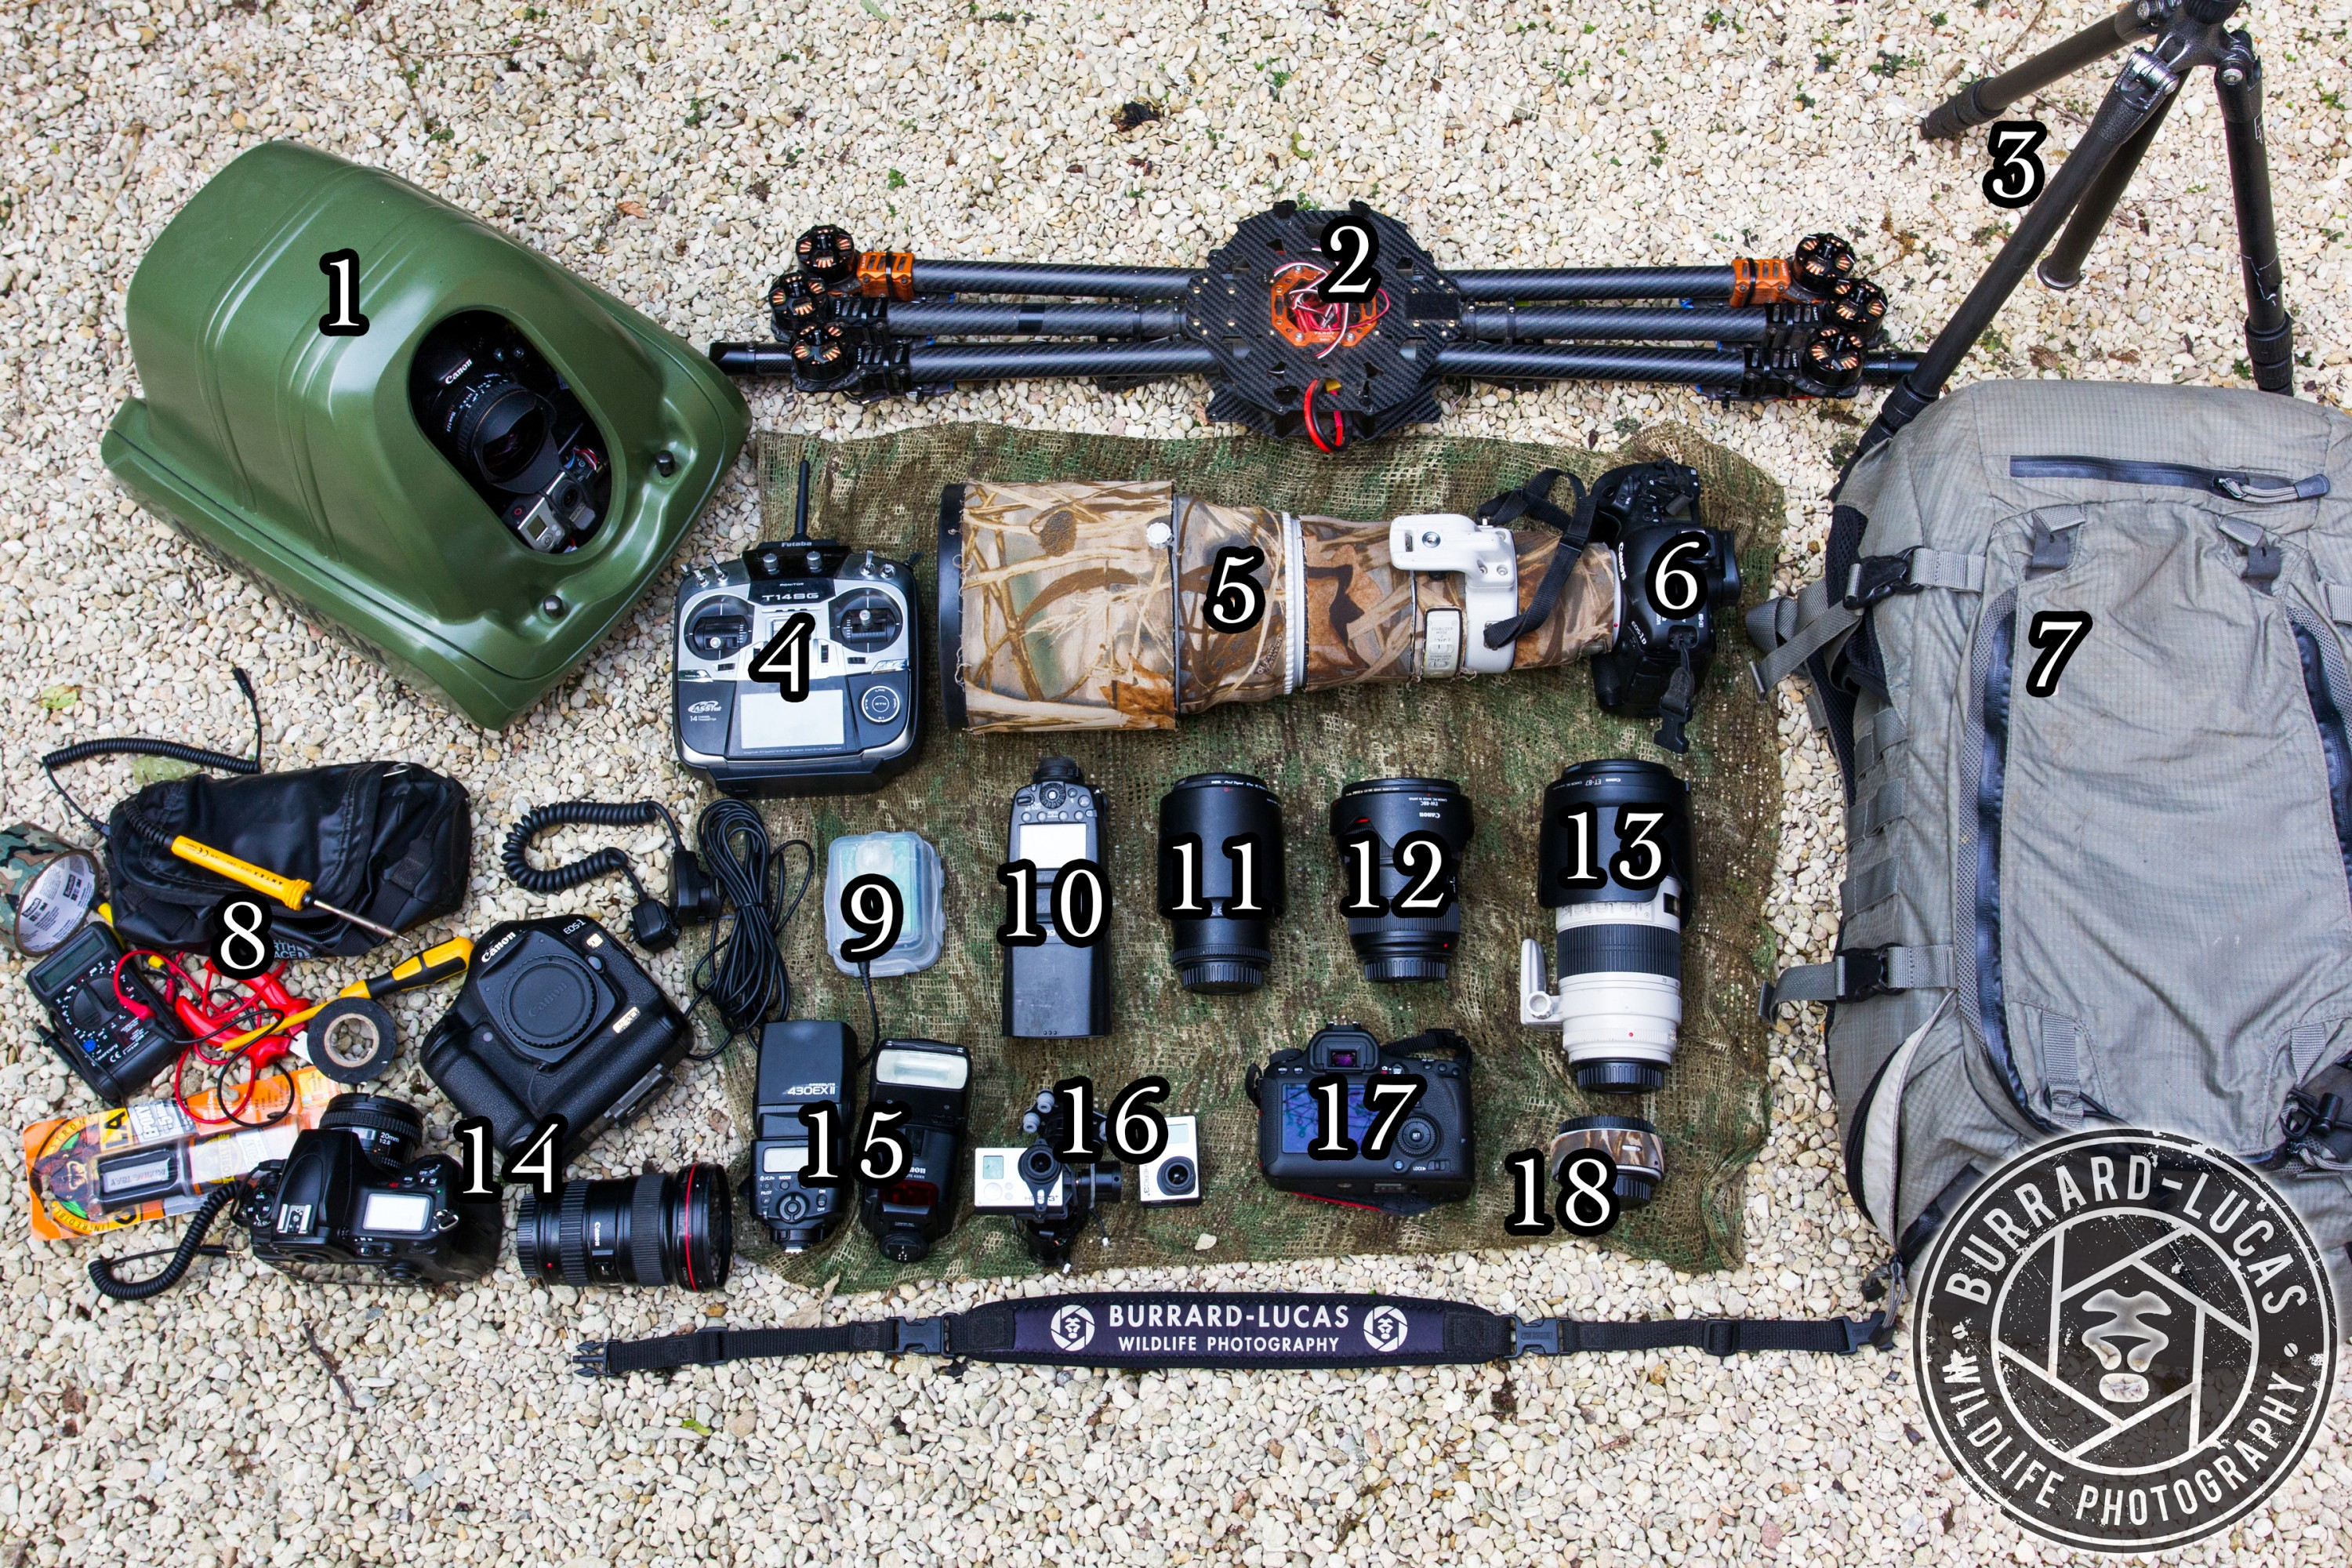 Will Burrard-Lucas camera gear